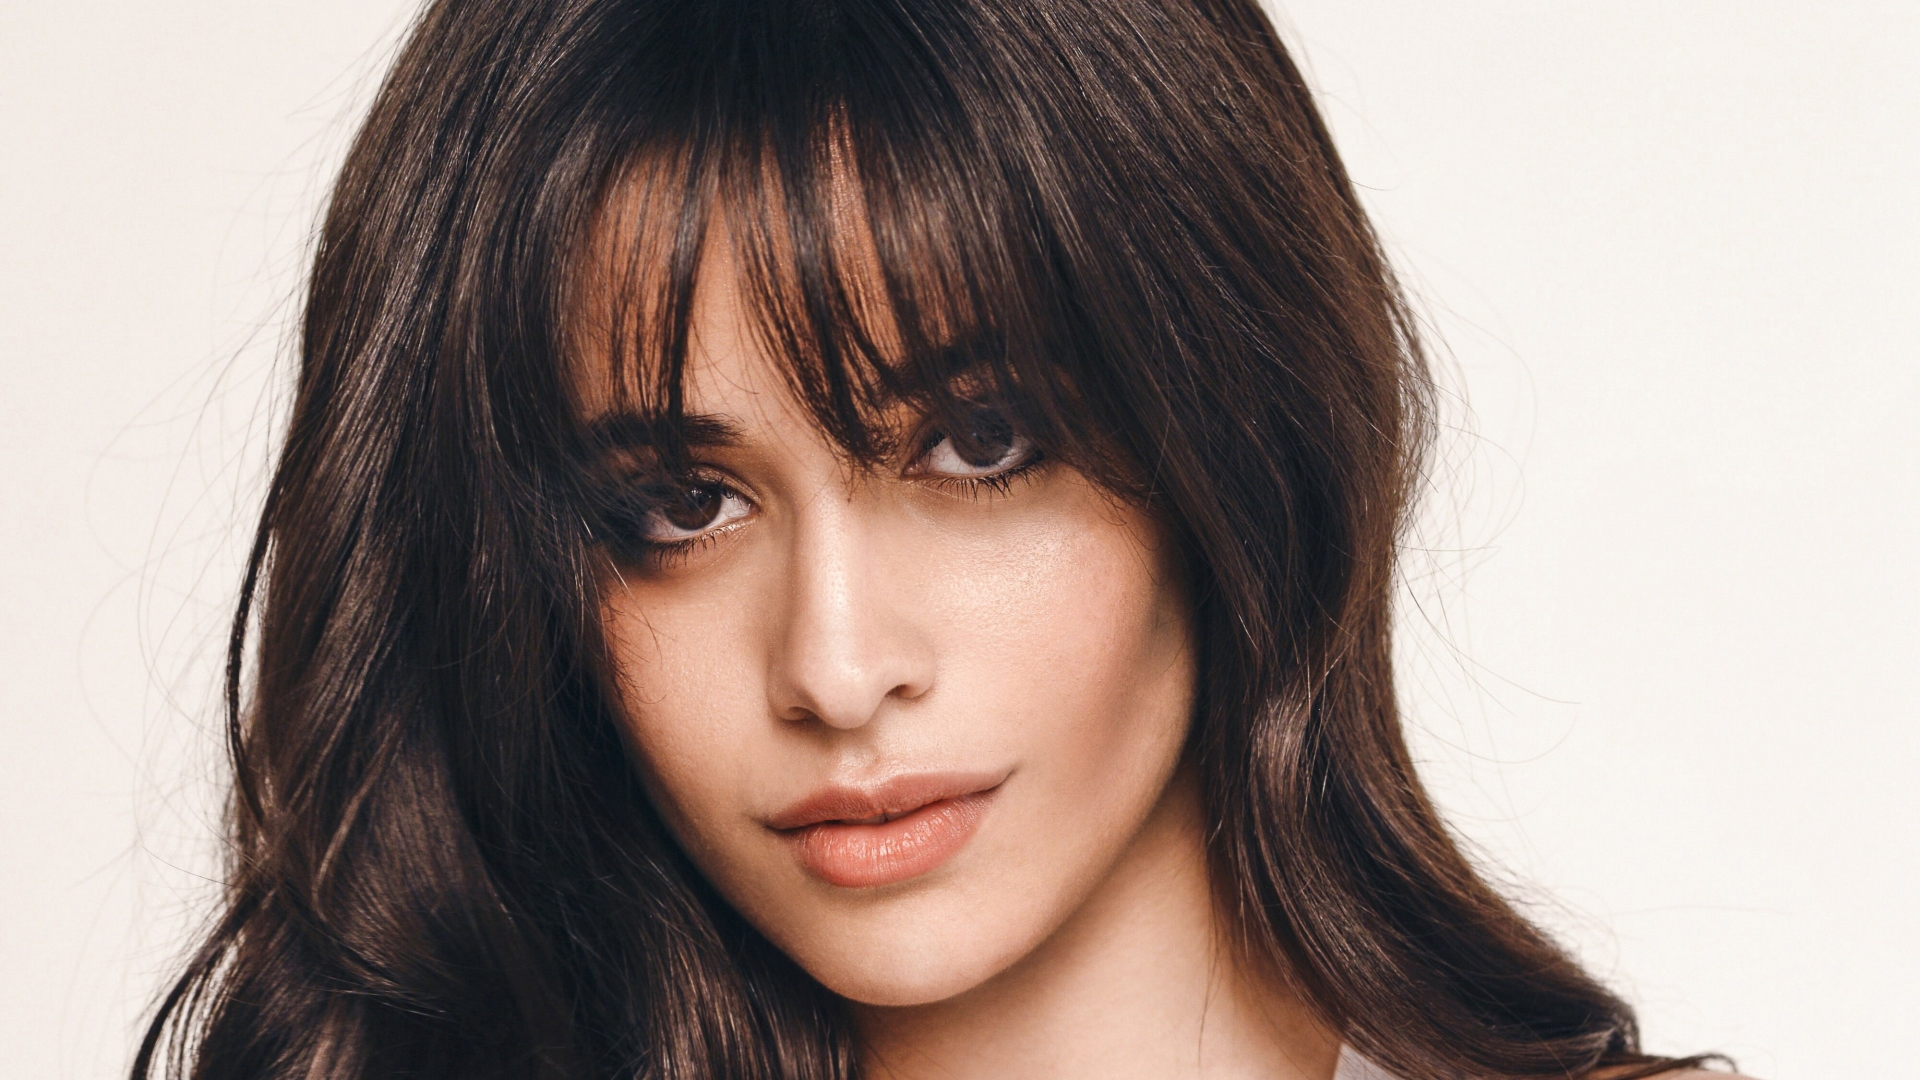 Camila Cabello Wallpaper